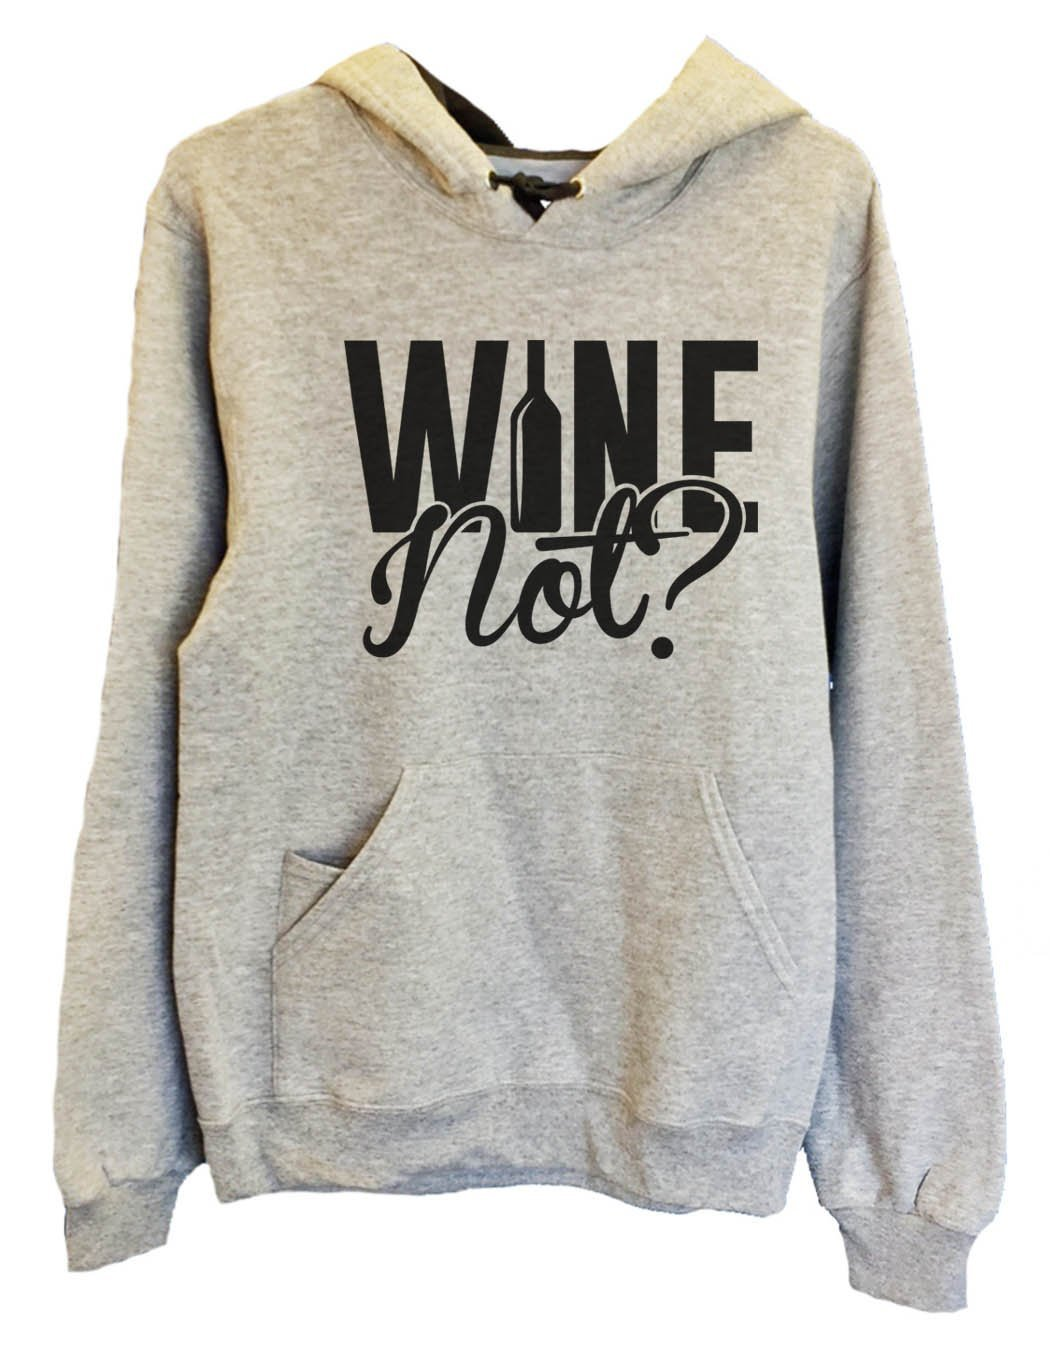 UNISEX HOODIE - Wine Not? - FUNNY MENS AND WOMENS HOODED SWEATSHIRTS - 2161 Funny Shirt Small / Heather Grey